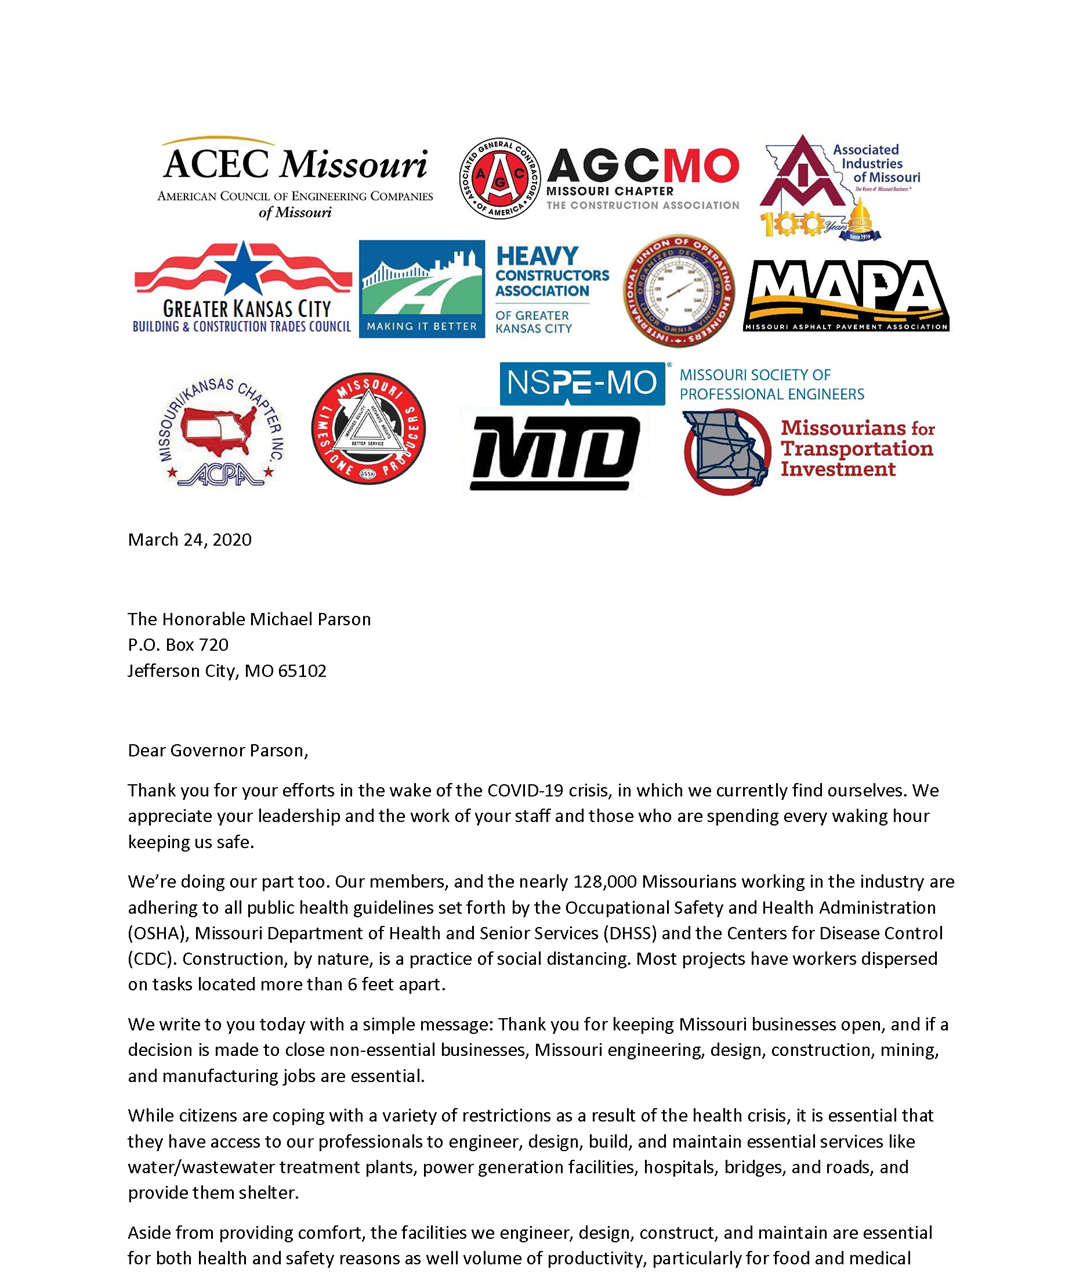 Missouri Society Of Professional Engineers Mspe Requests Governor Parson To Consider Engineering And Design As Essential Business